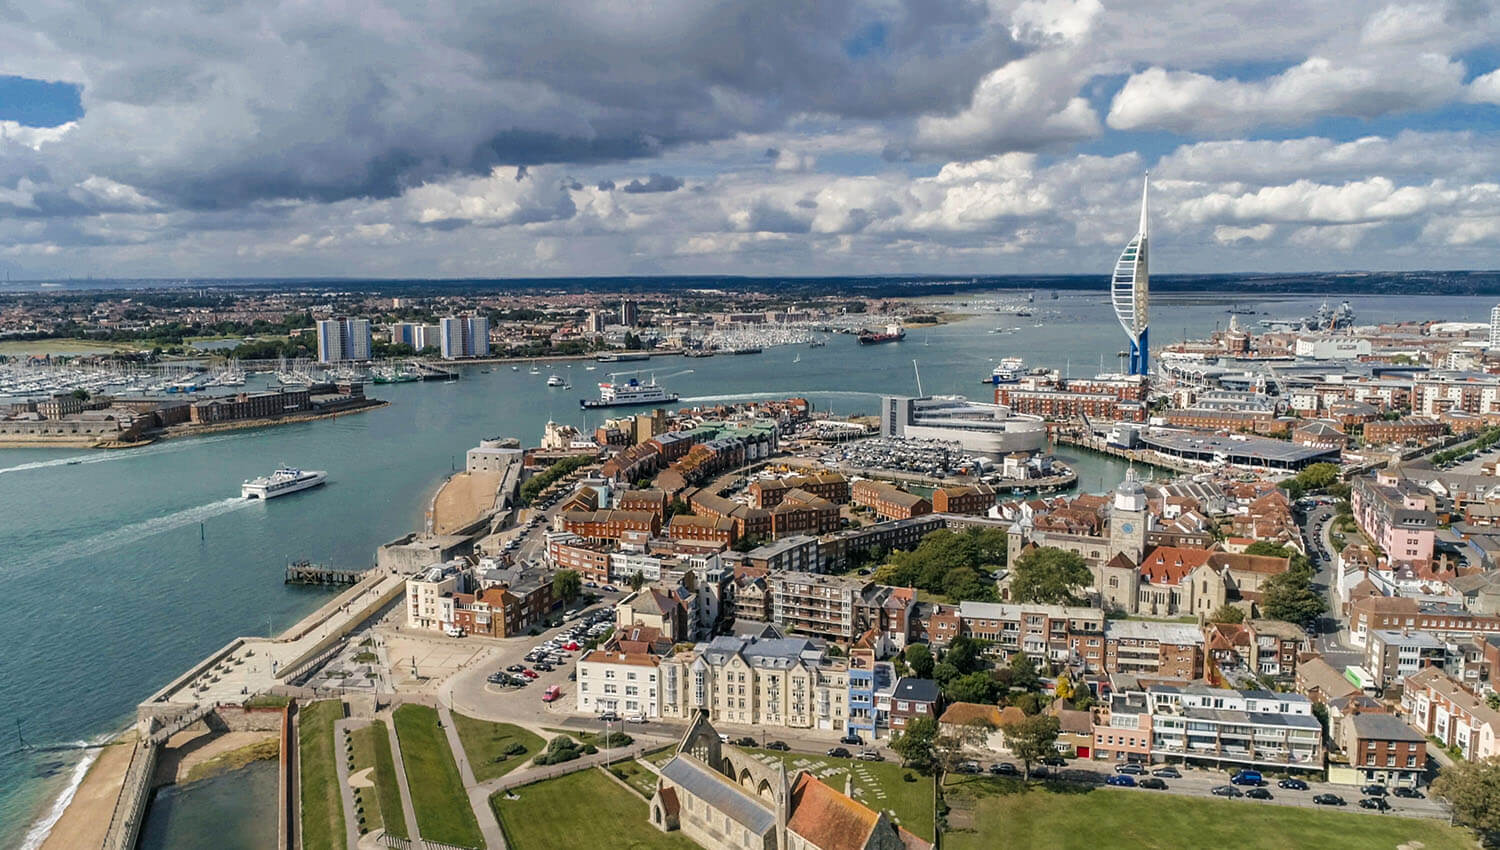 portsmouth city dock and landscape with cloudy sky boats on water